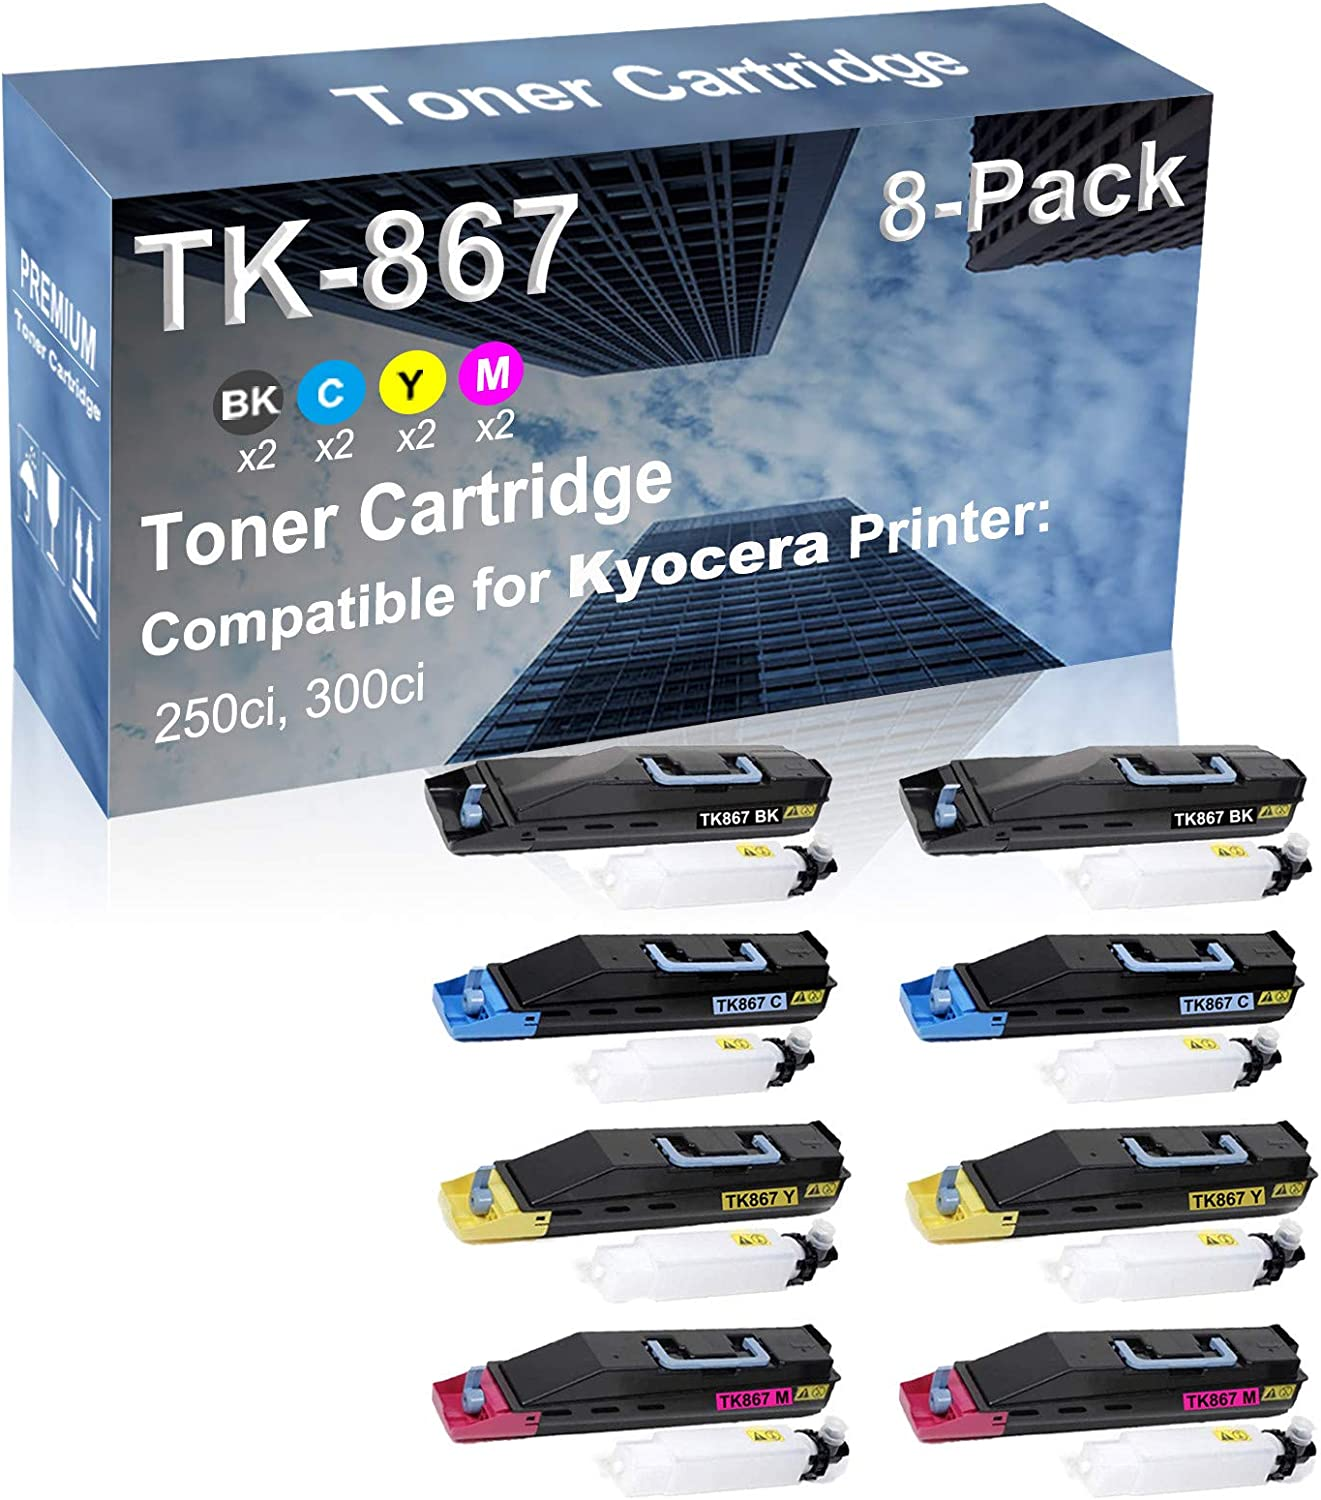 8-Pack (2BK+2C+2Y+2M) Compatible 250ci, 300ci Printer Toner Cartridge High Capacity Replacement for Kyocera TK867 (TK-867BK+ TK-867C+ TTK-867Y+ TK-867M) Toner Cartridge